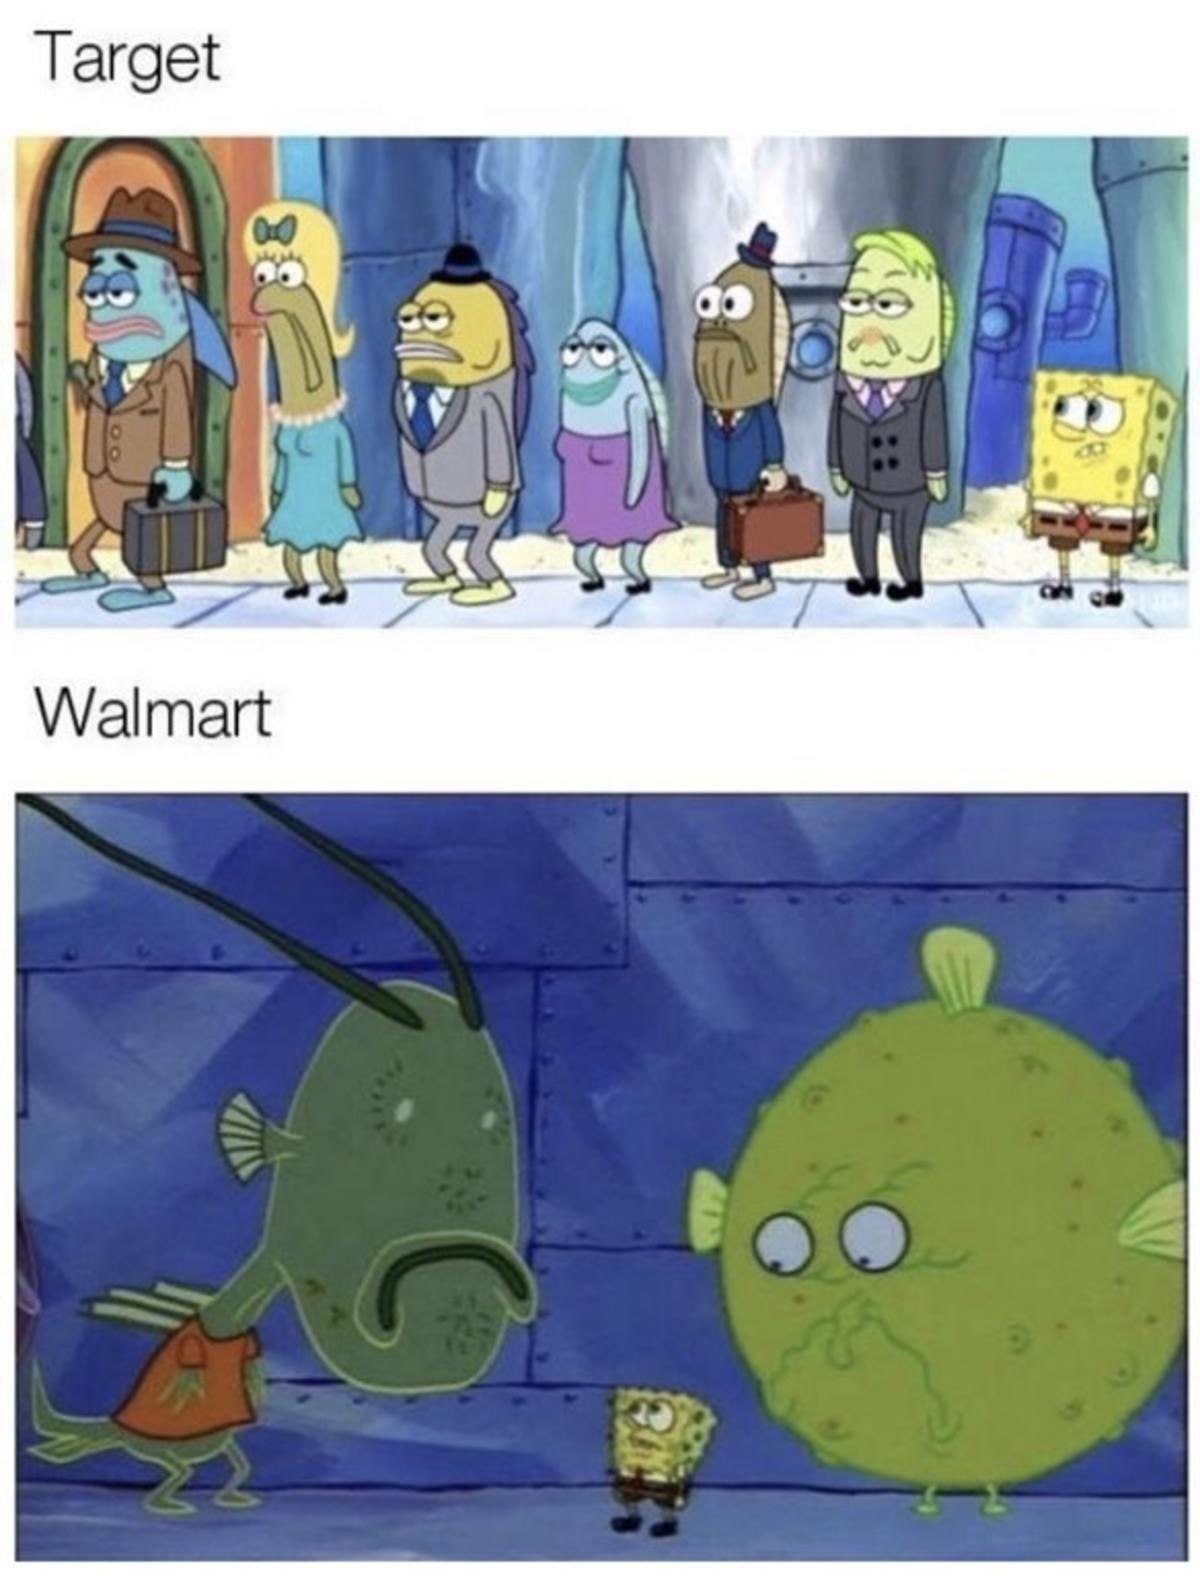 Target vs Walmart. .. I'm convince these memes are made by Target CEOs to try to make target look more inviting.